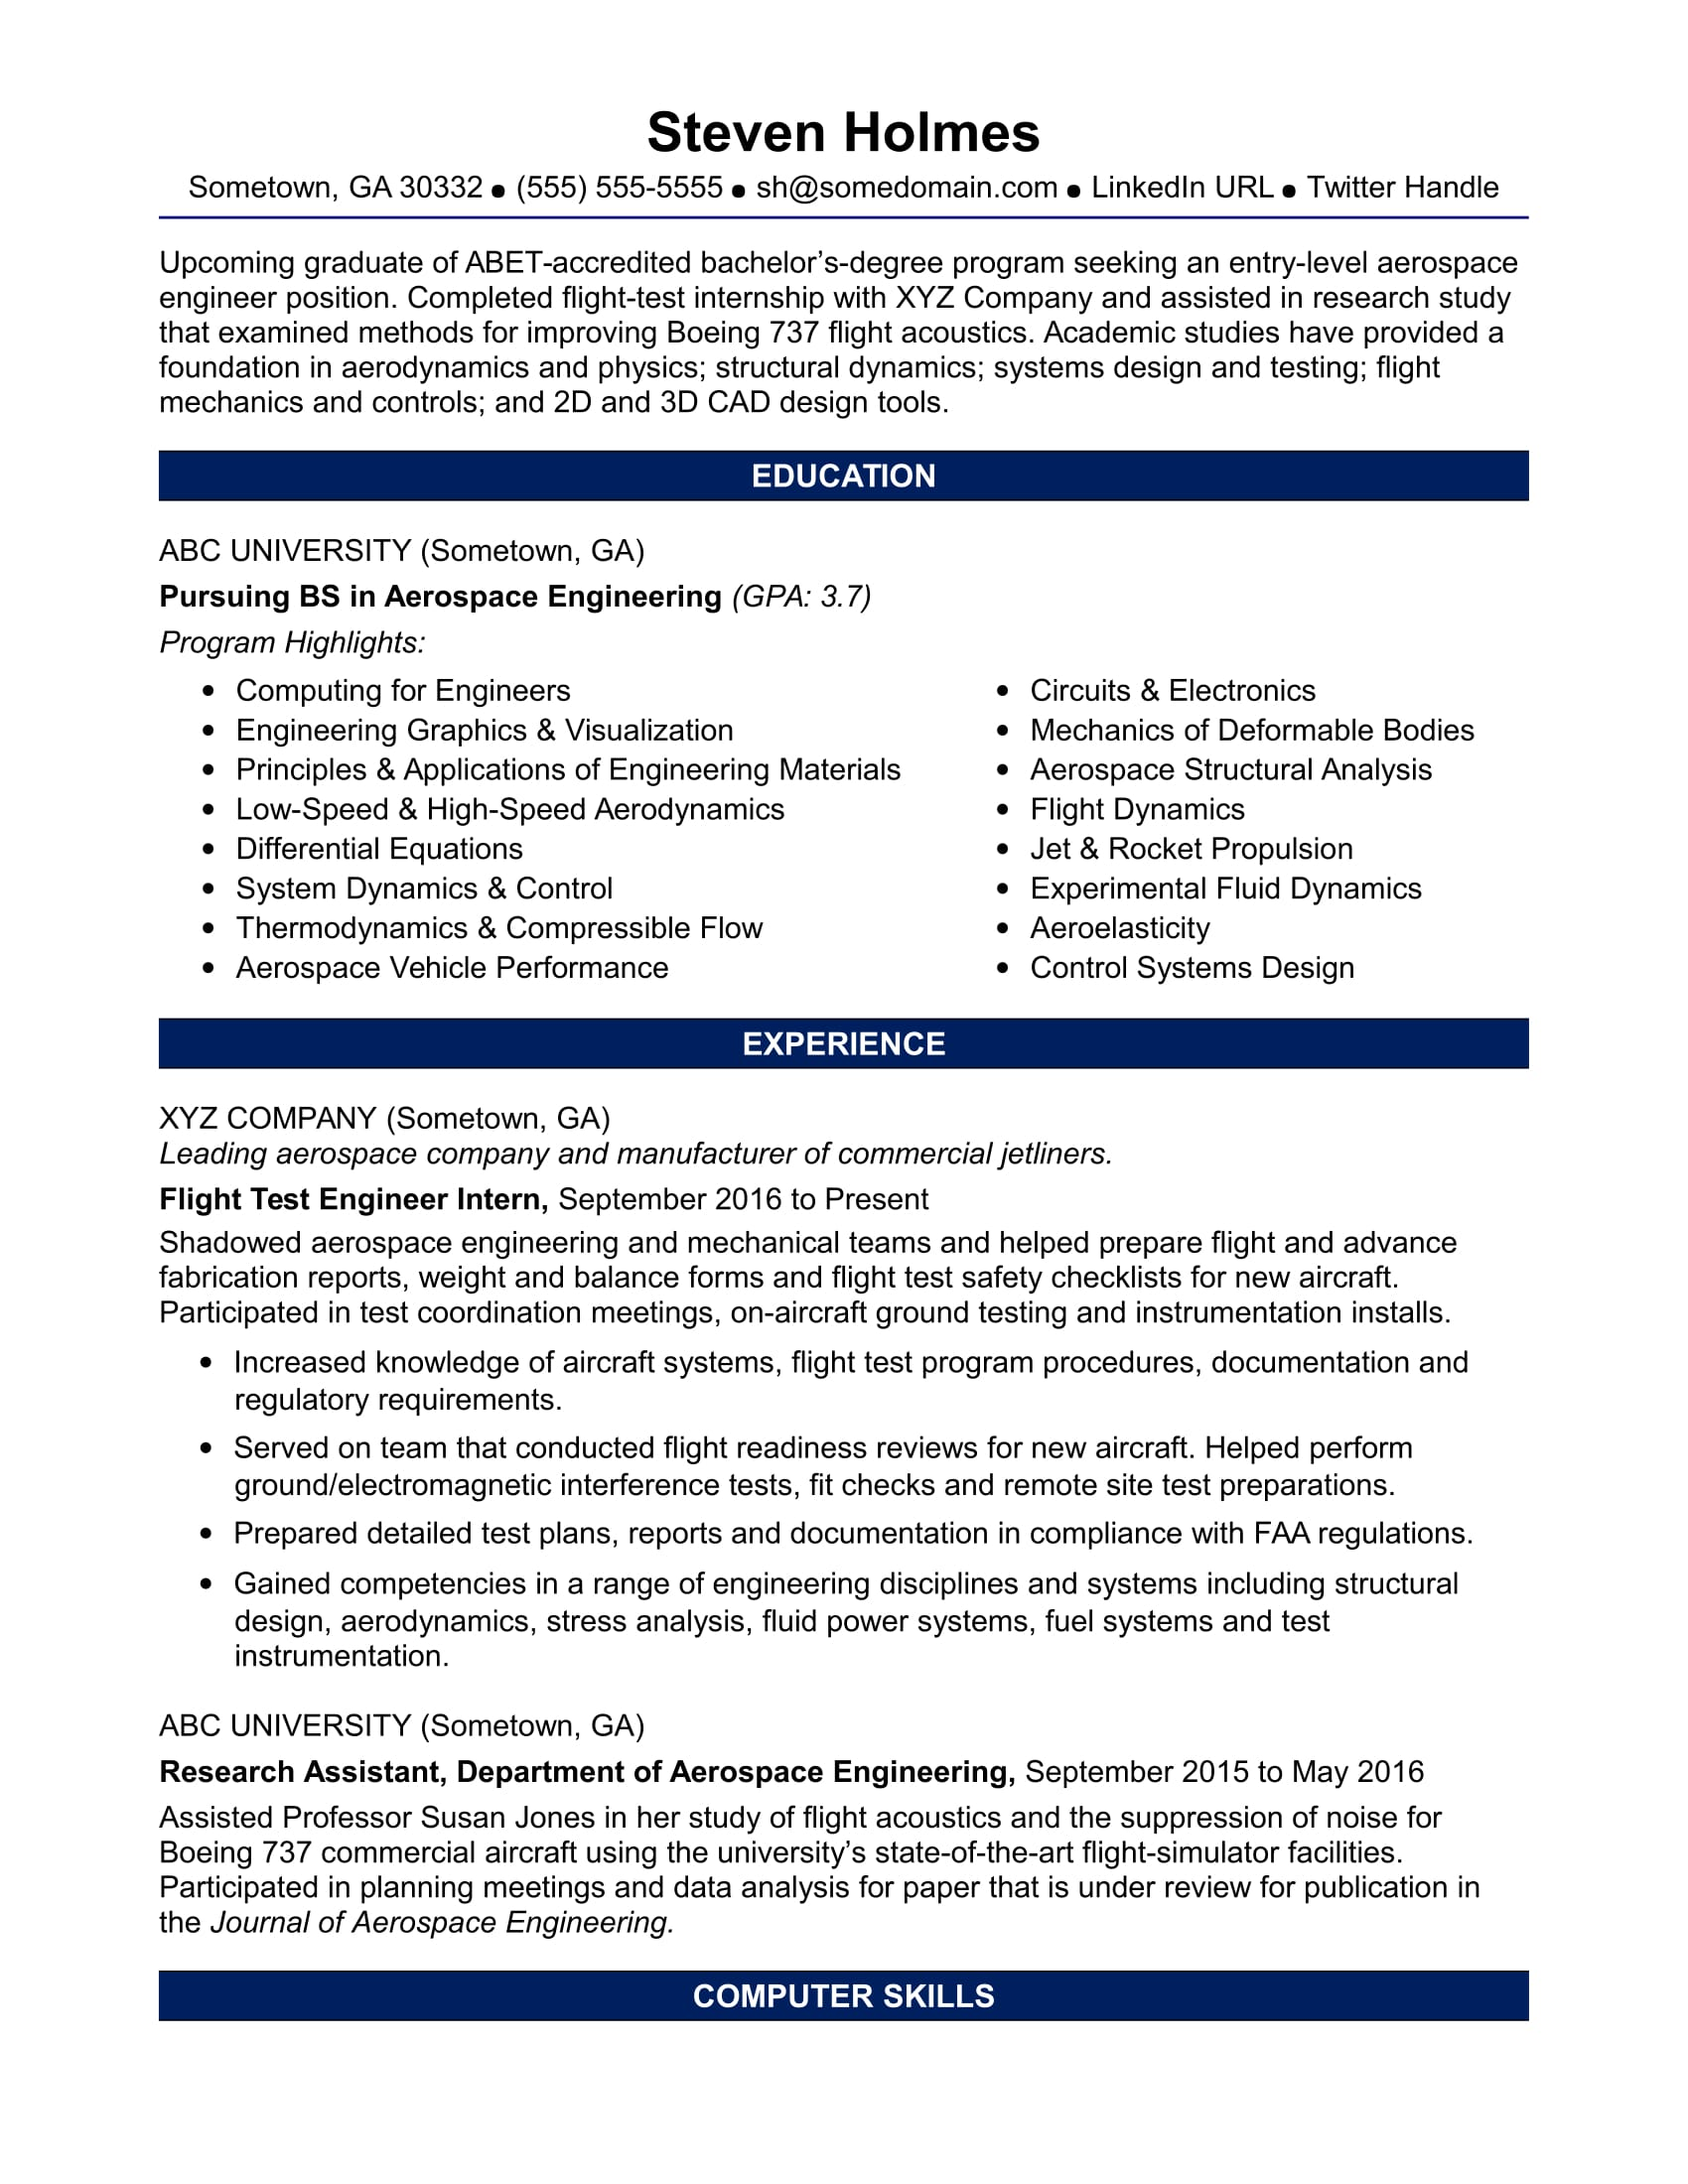 sample resume for an entry level aerospace engineer monster format msc statistics Resume Resume Format For Msc Statistics Freshers